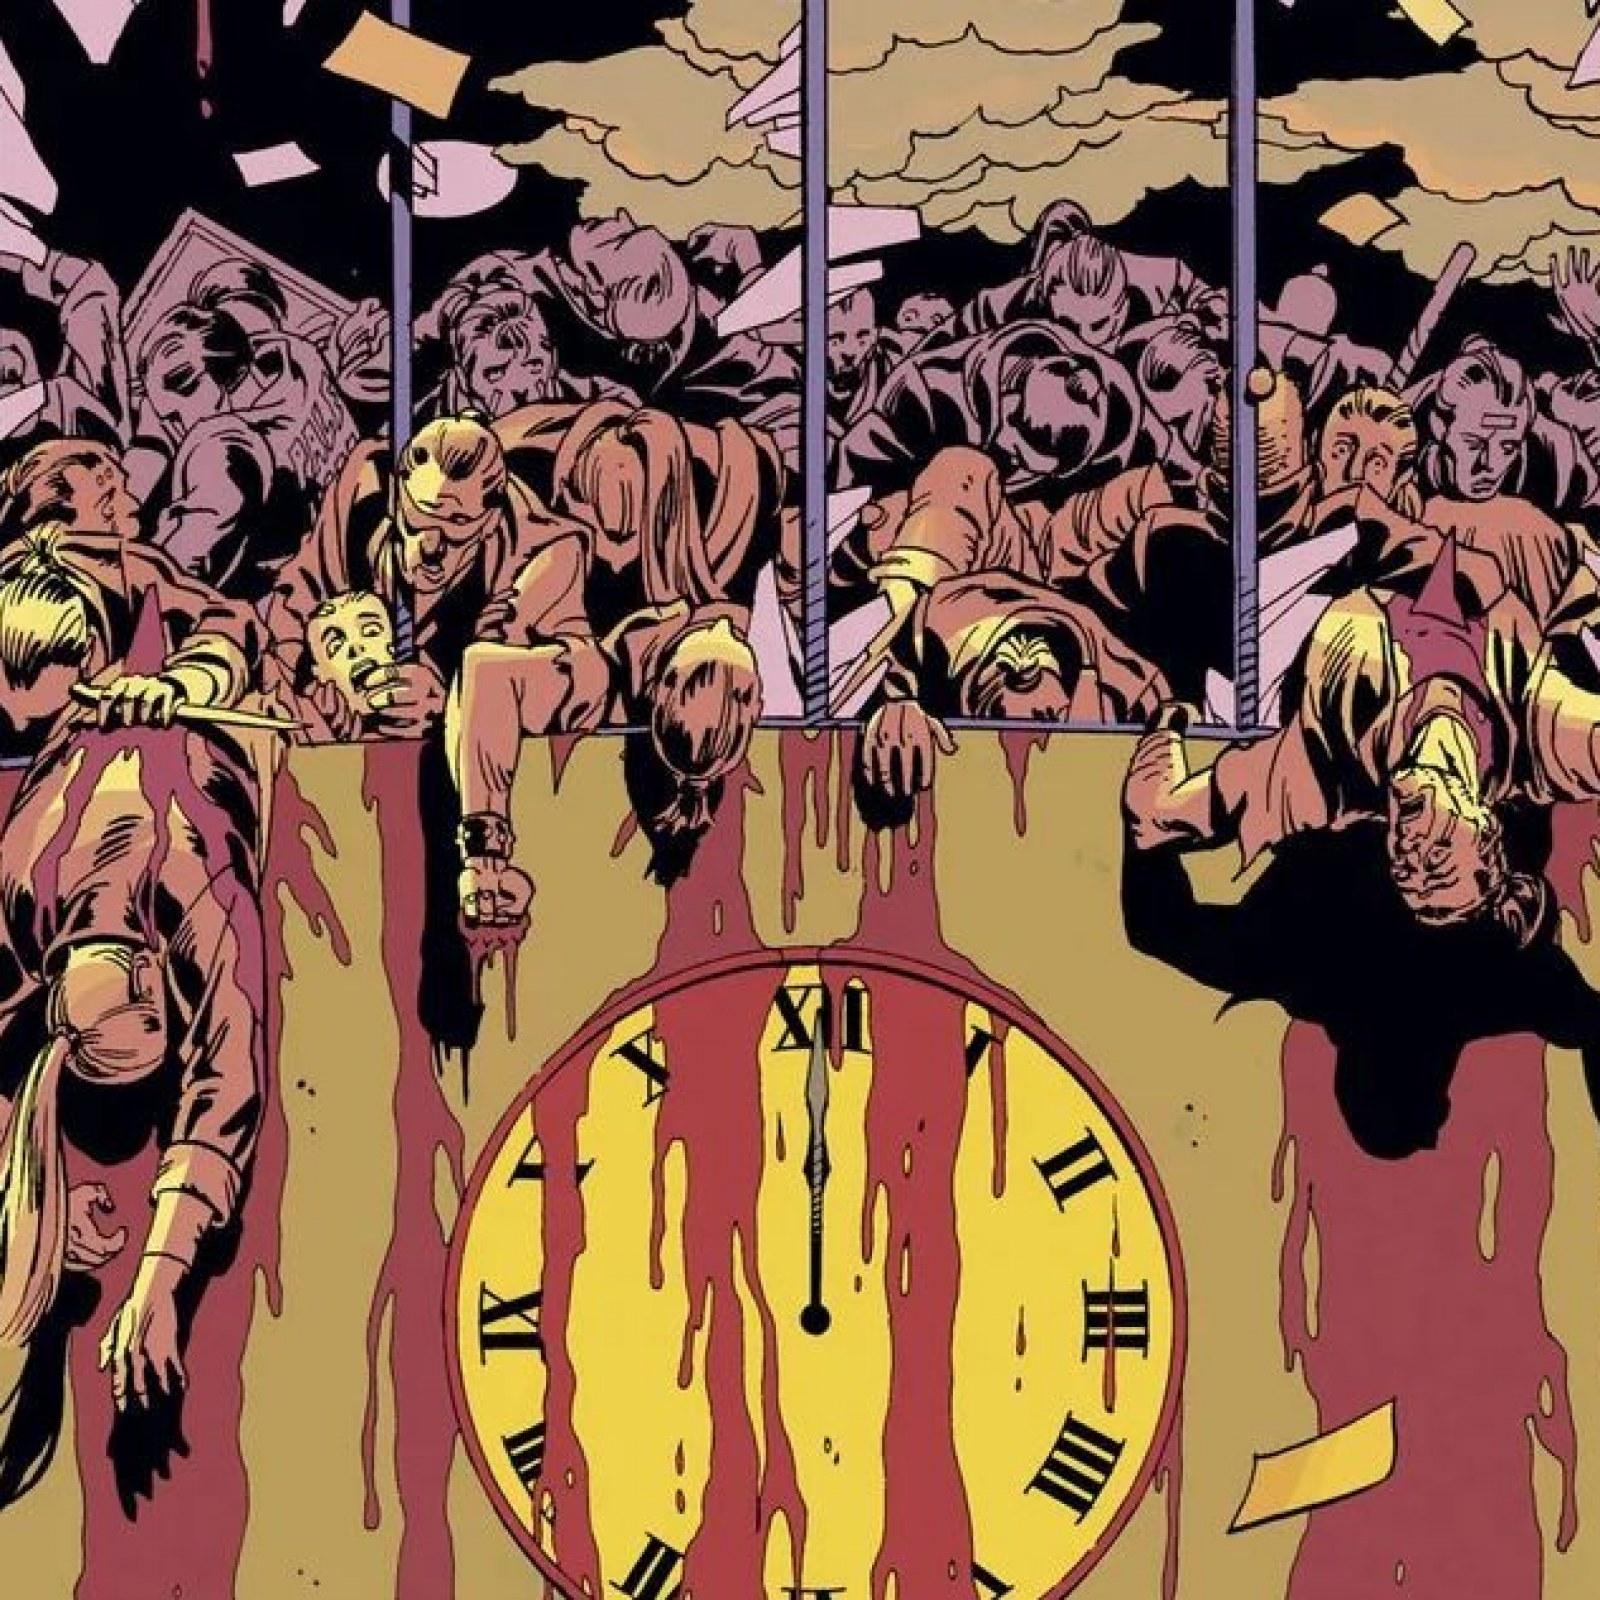 Hbo Watchmen Series Wasn T What I Imagined Says Original